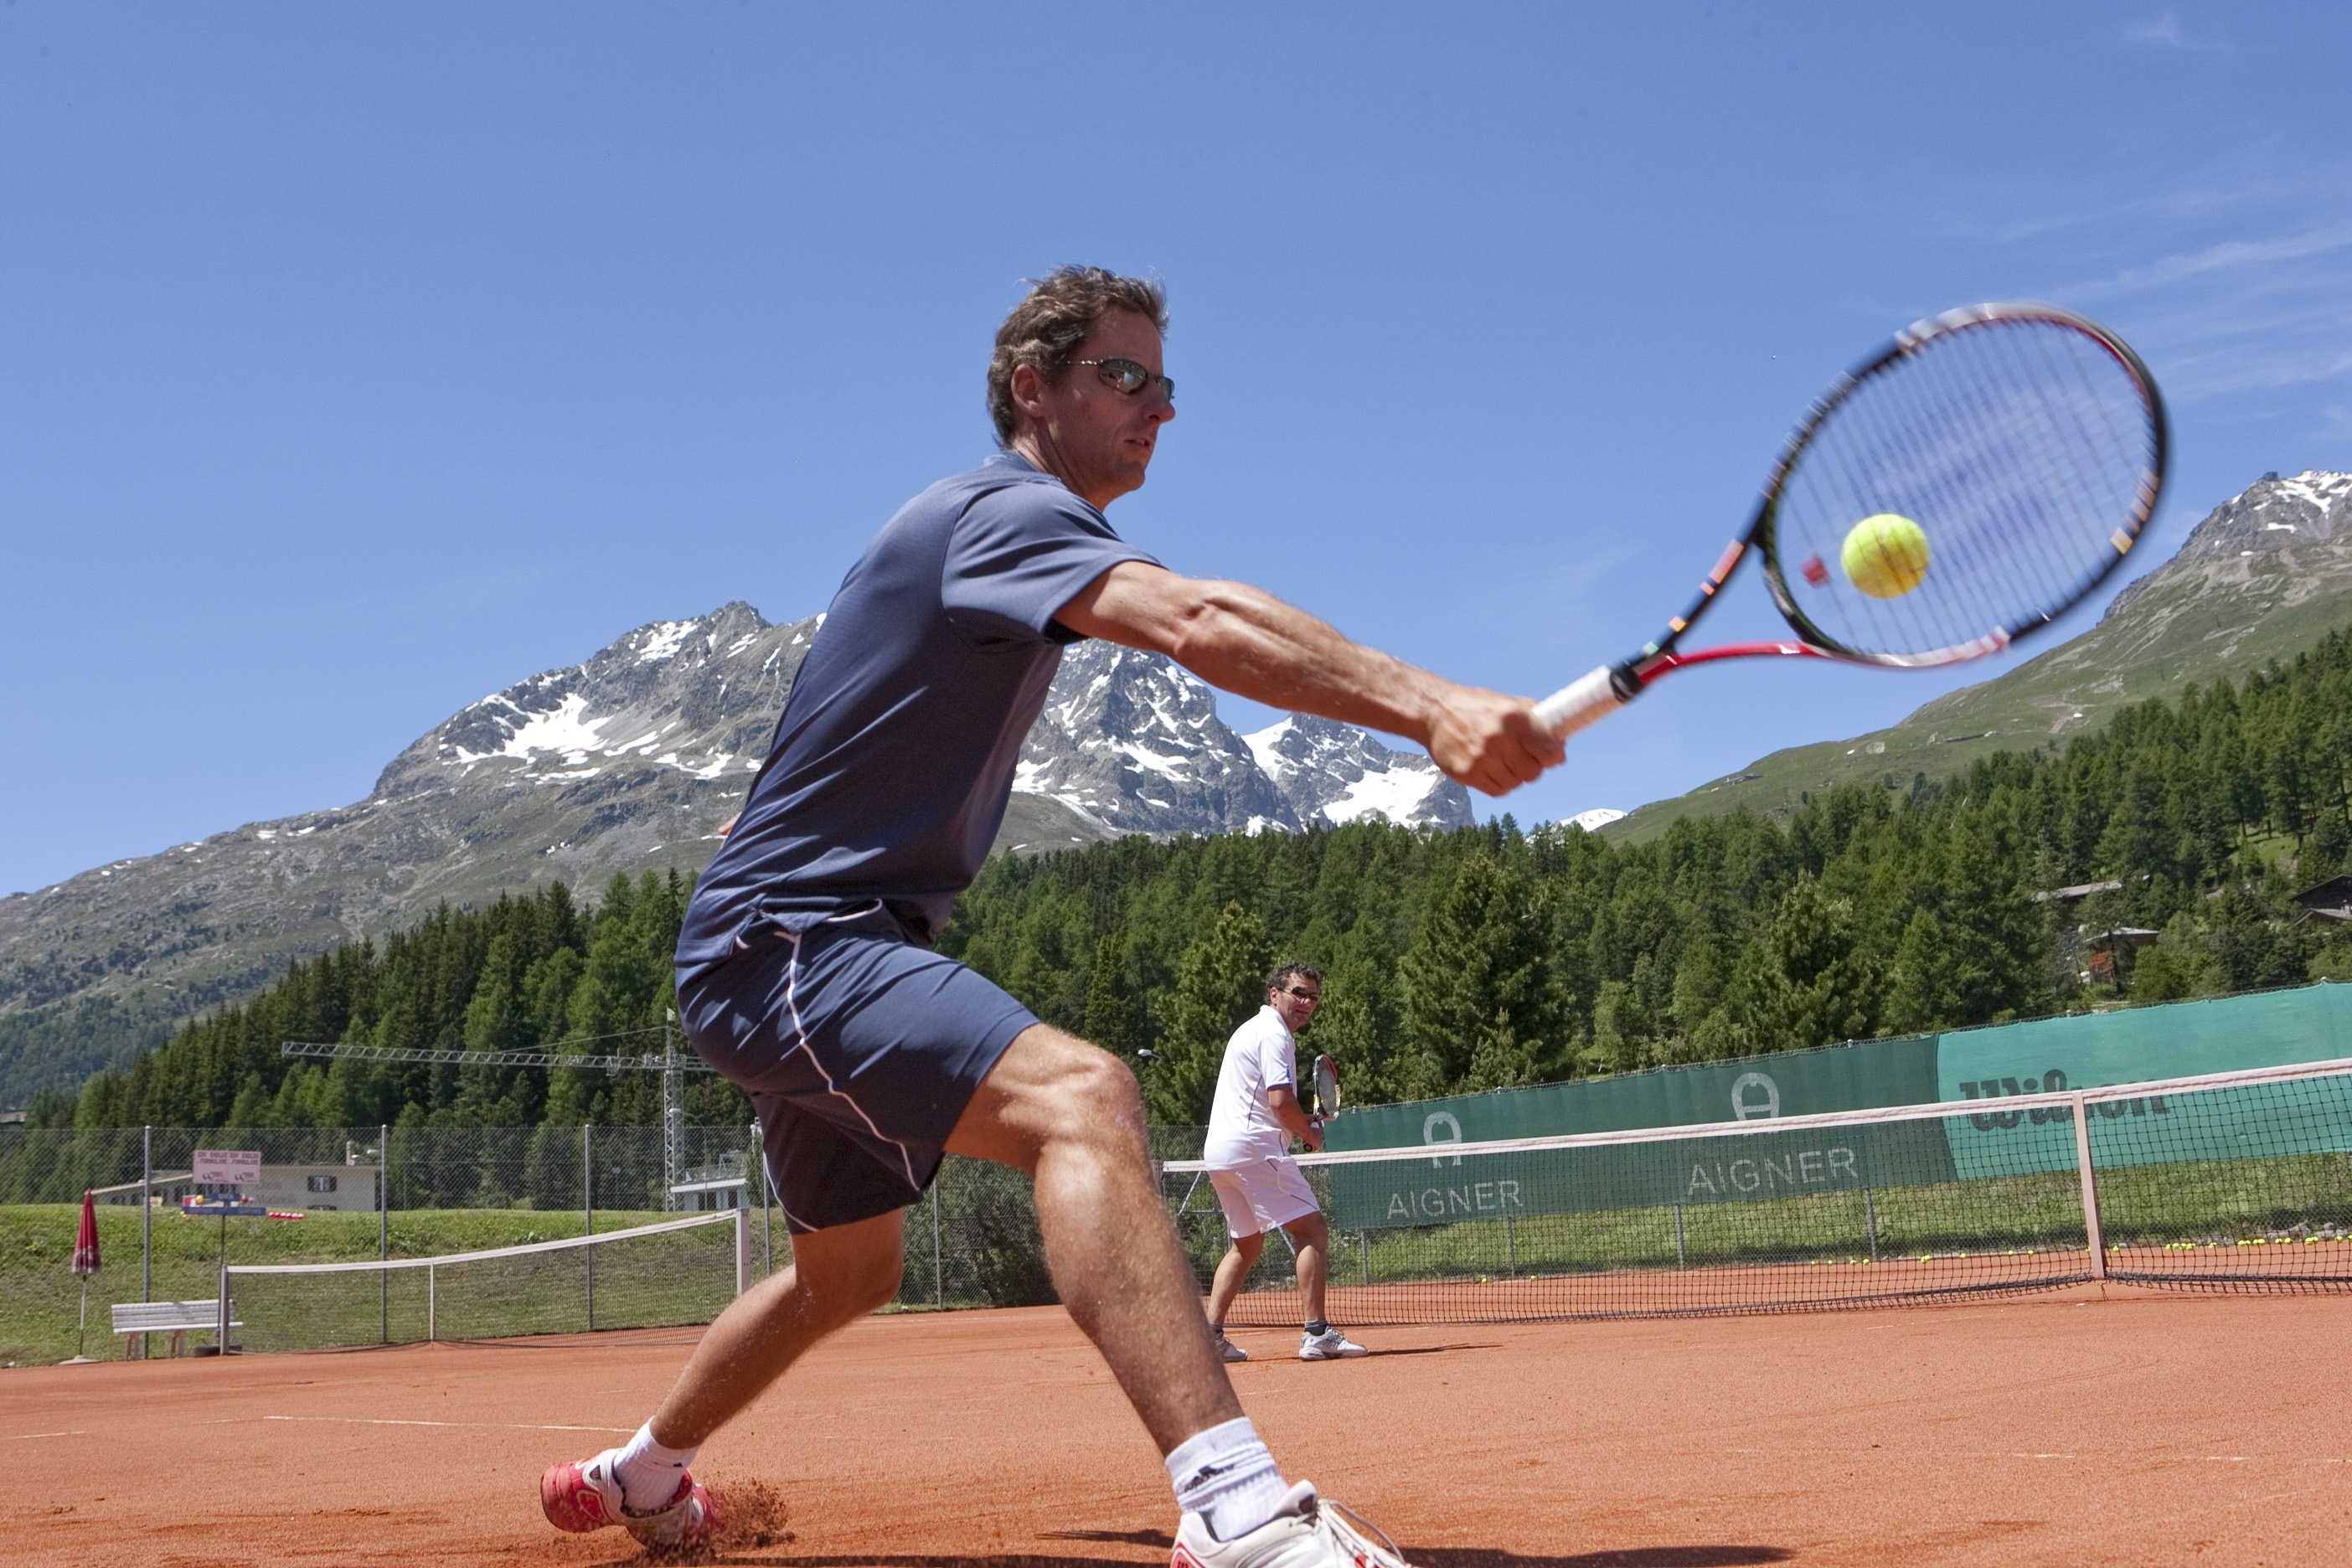 Tennis & Squash Center St. Moritz Slide 4